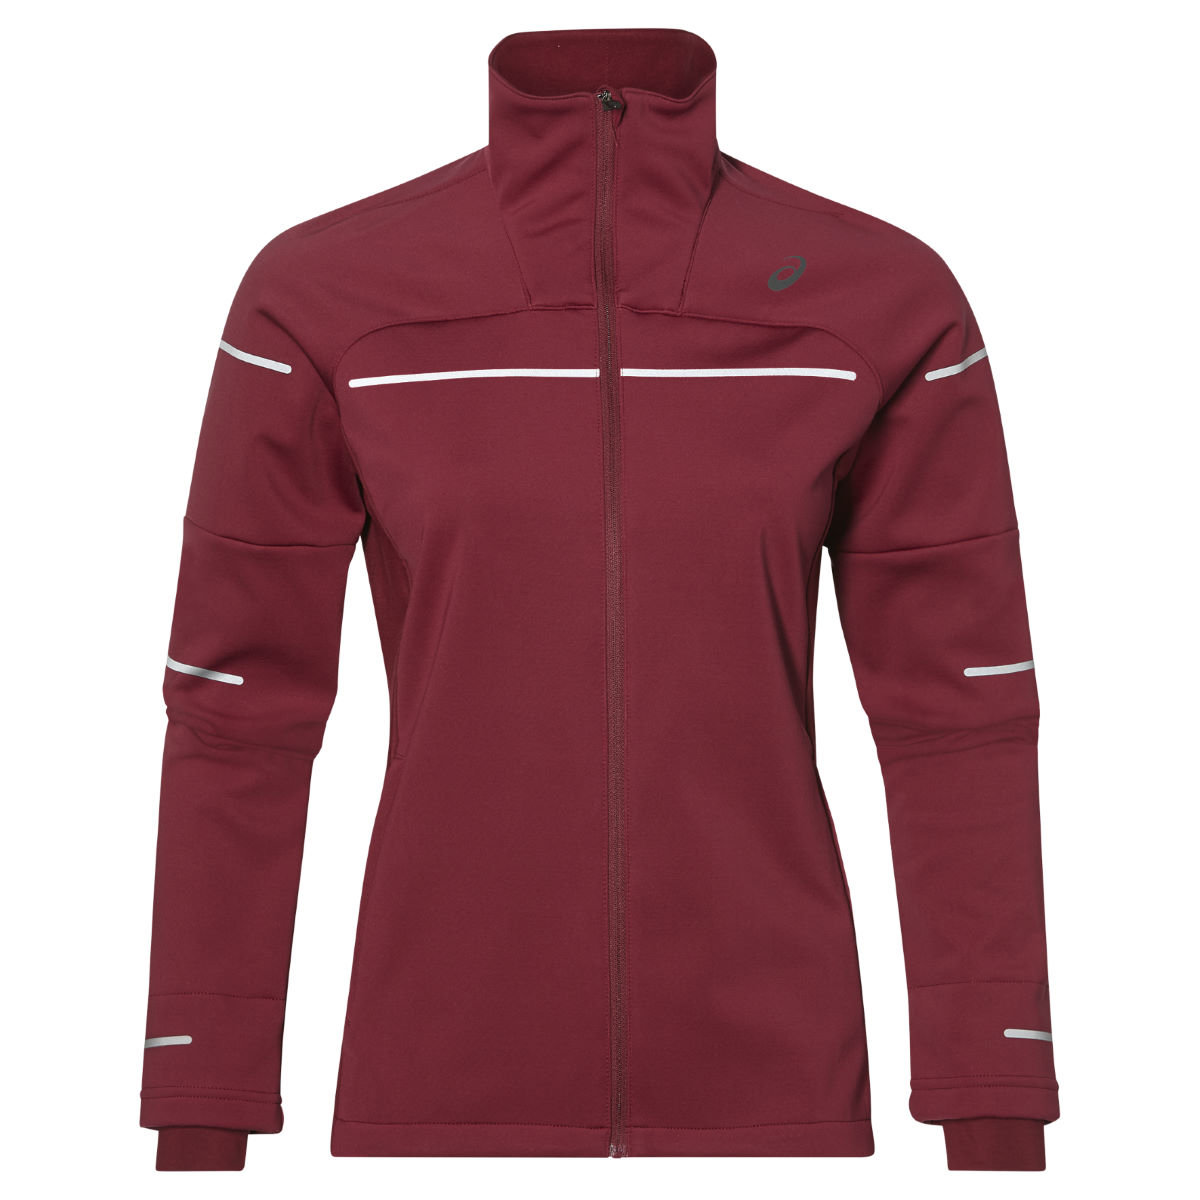 Asics Women's Lite-Show Winter Jacket - Chaquetas